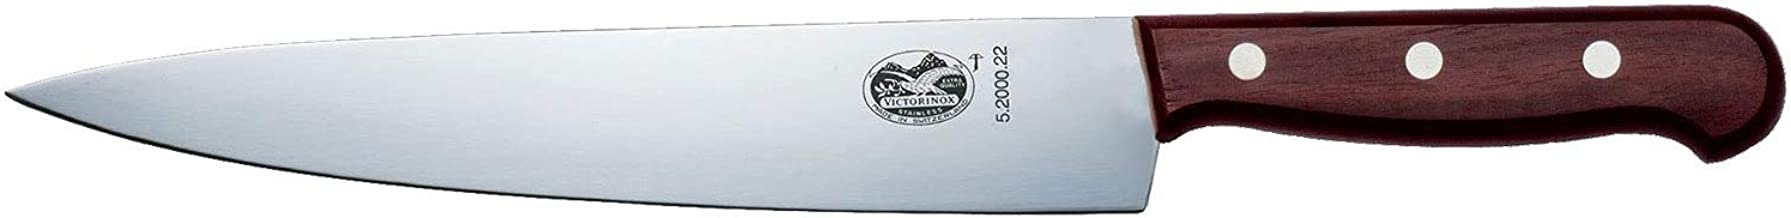 Victorinox 5.2000.22G Rosewood Carving Knife, Rosewood